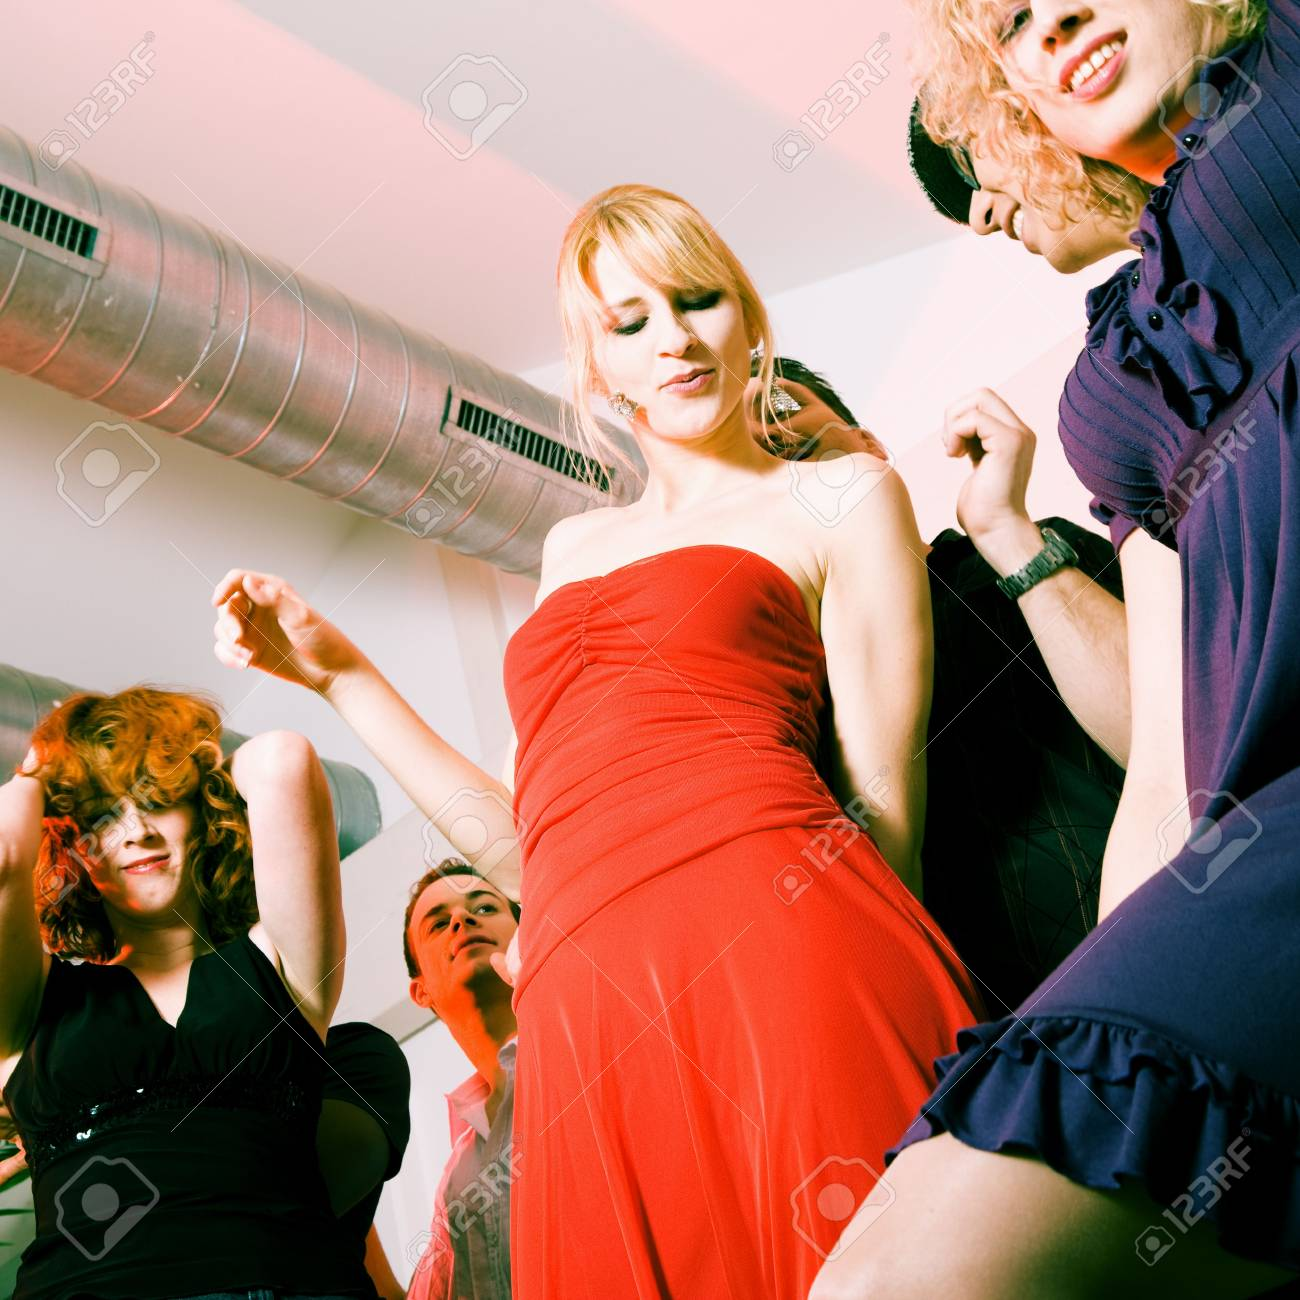 Crowd of people dancing in a disco club having a great party Stock Photo - 6081992